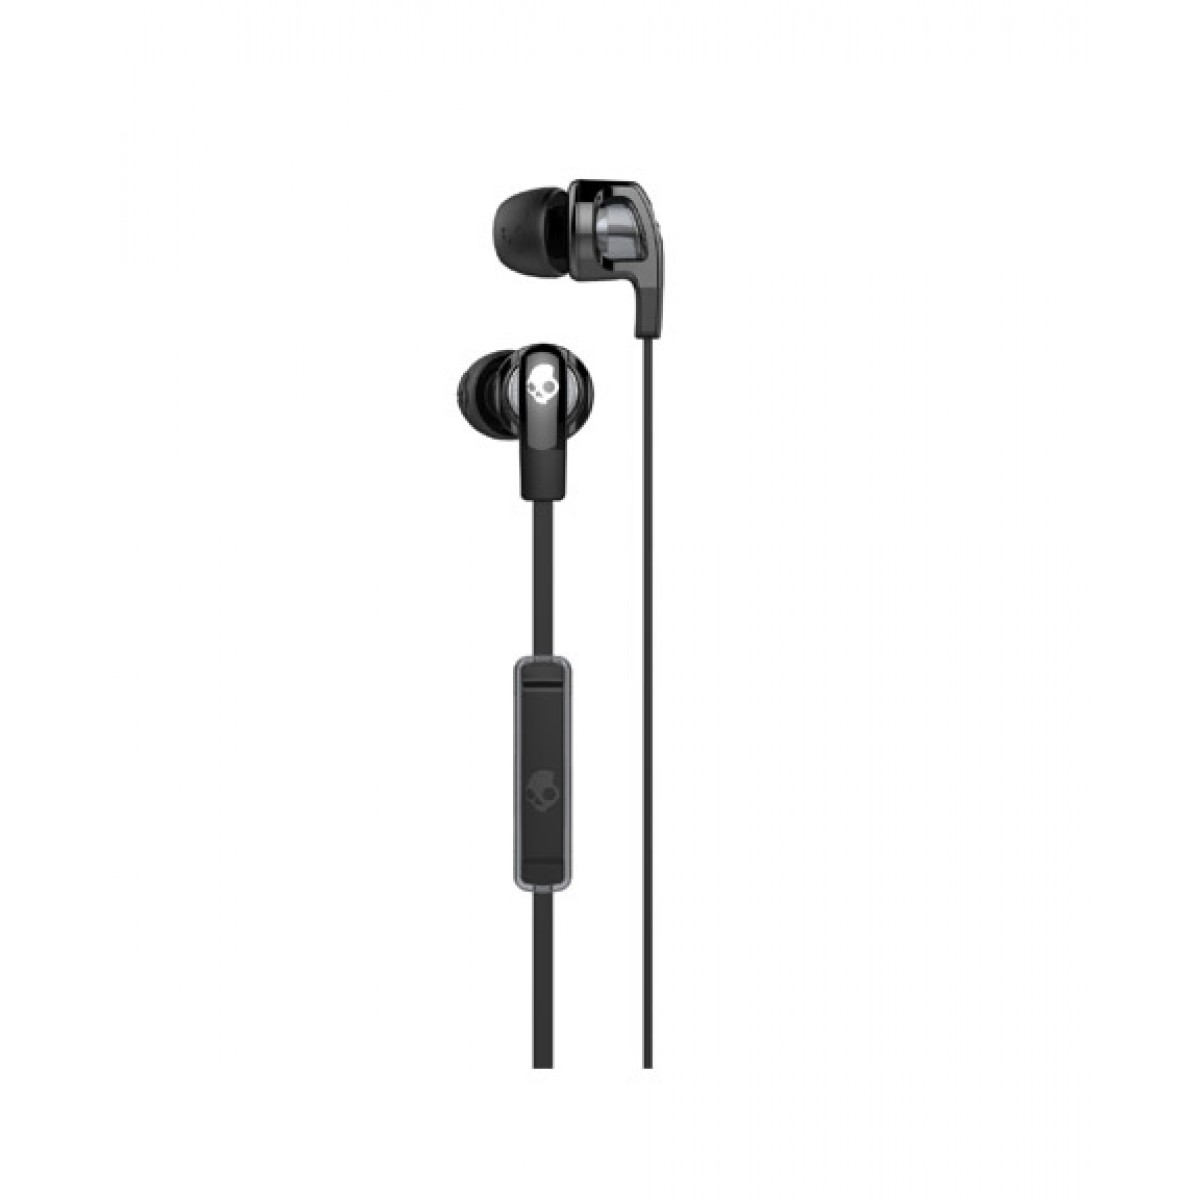 Skullcandy Smokin Buds 2 In-Ear Headphones with Mic Black (S2PGFY-003)